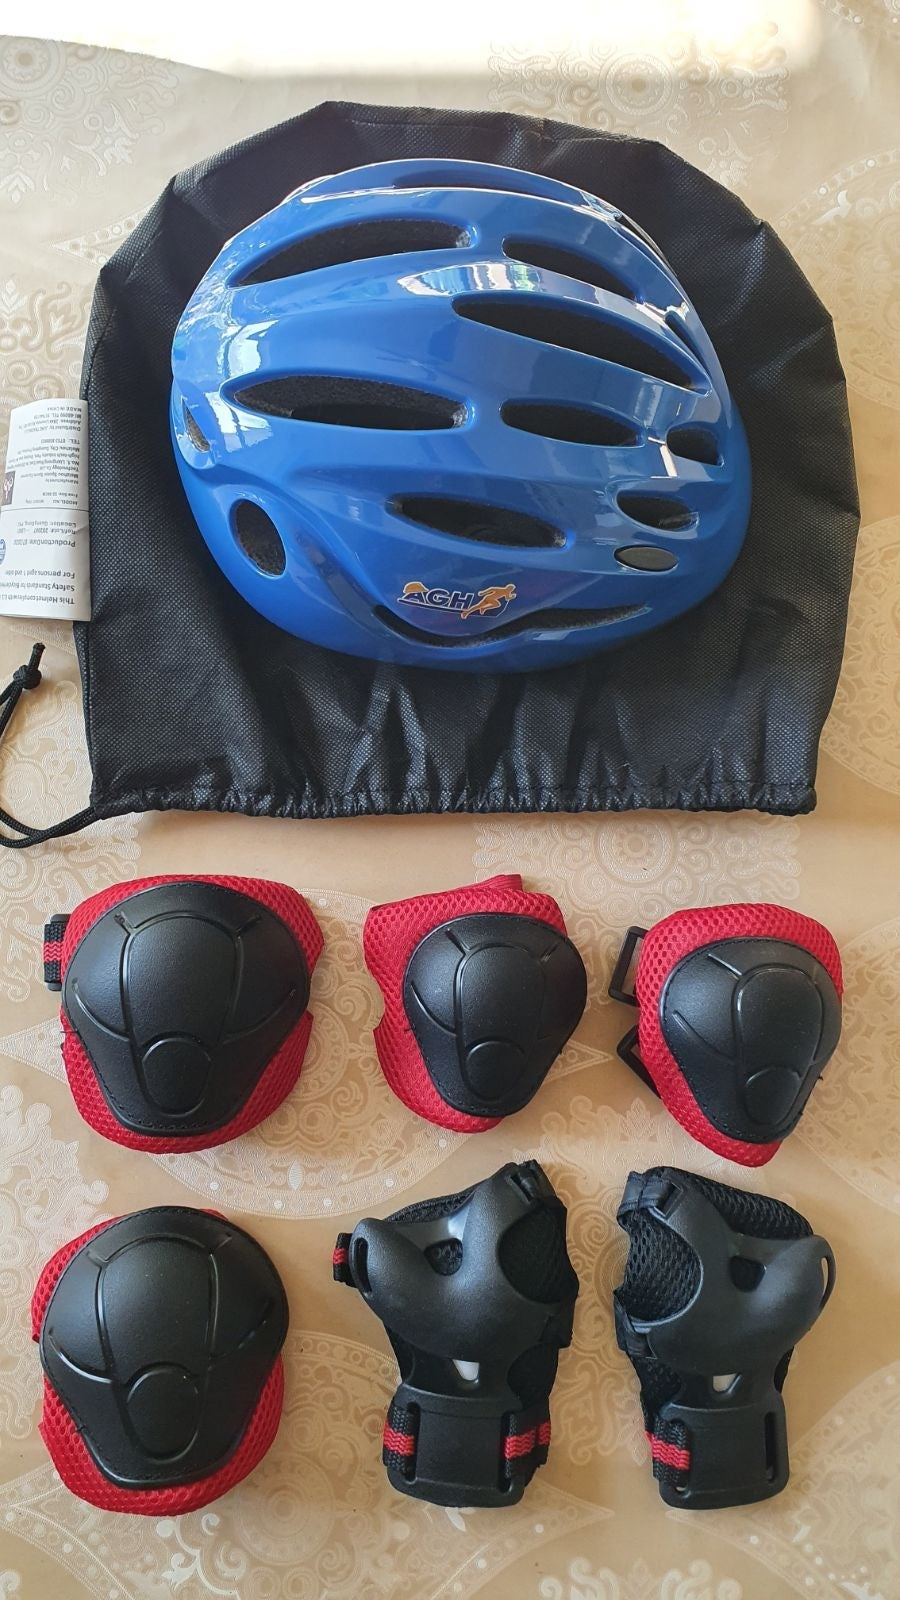 Protective Knee Pads and Helmet for Kids